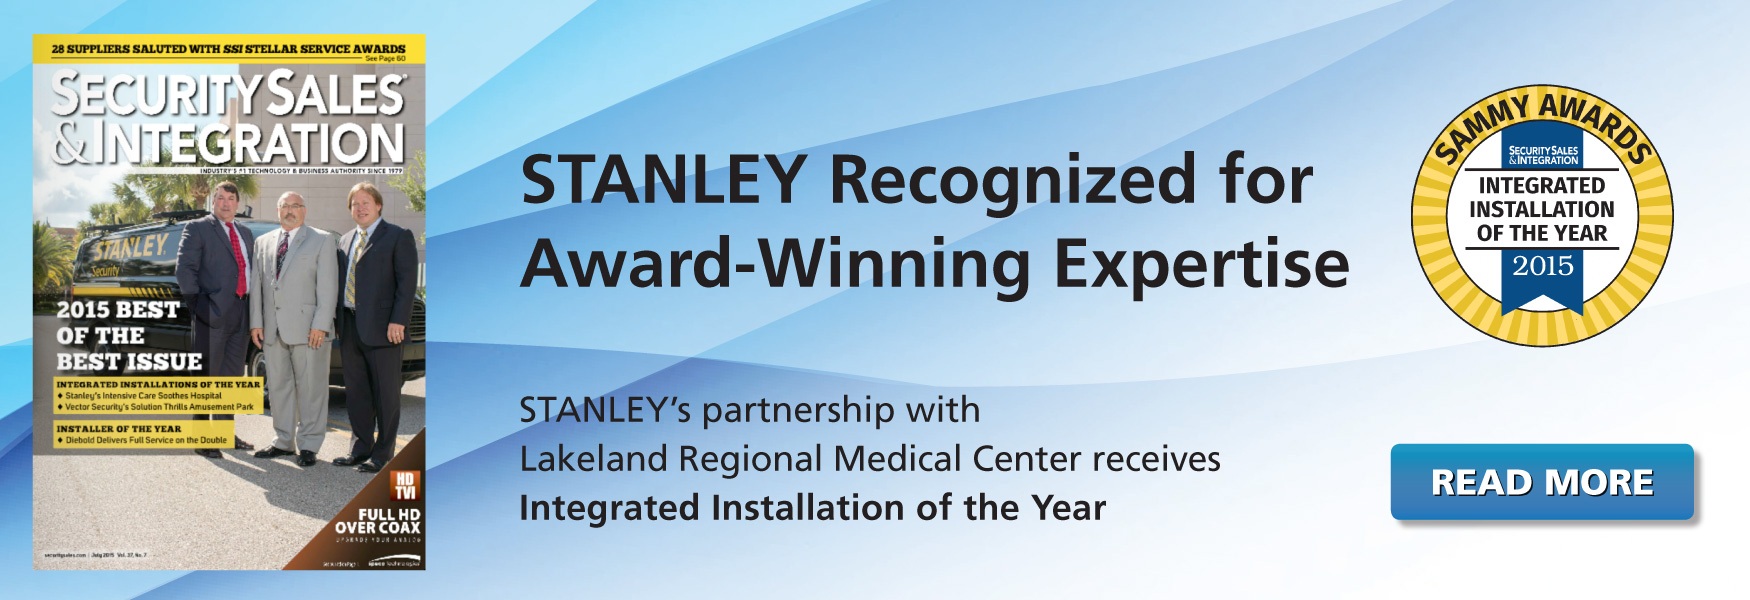 STANLEY Wins Award for 2015 Integrated Installation of the Year